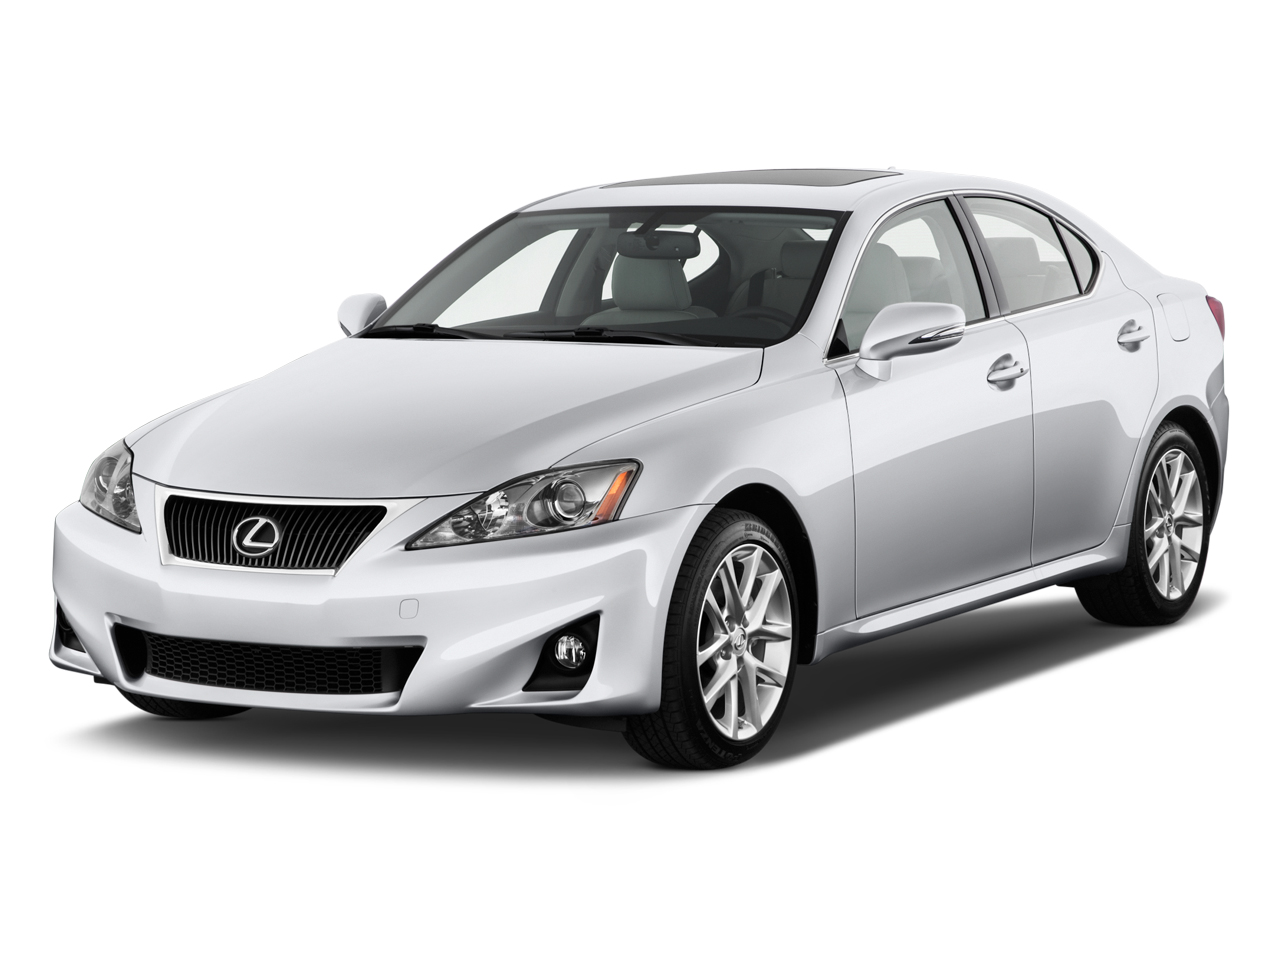 2011 lexus is 250 review ratings specs prices and photos the car connection. Black Bedroom Furniture Sets. Home Design Ideas